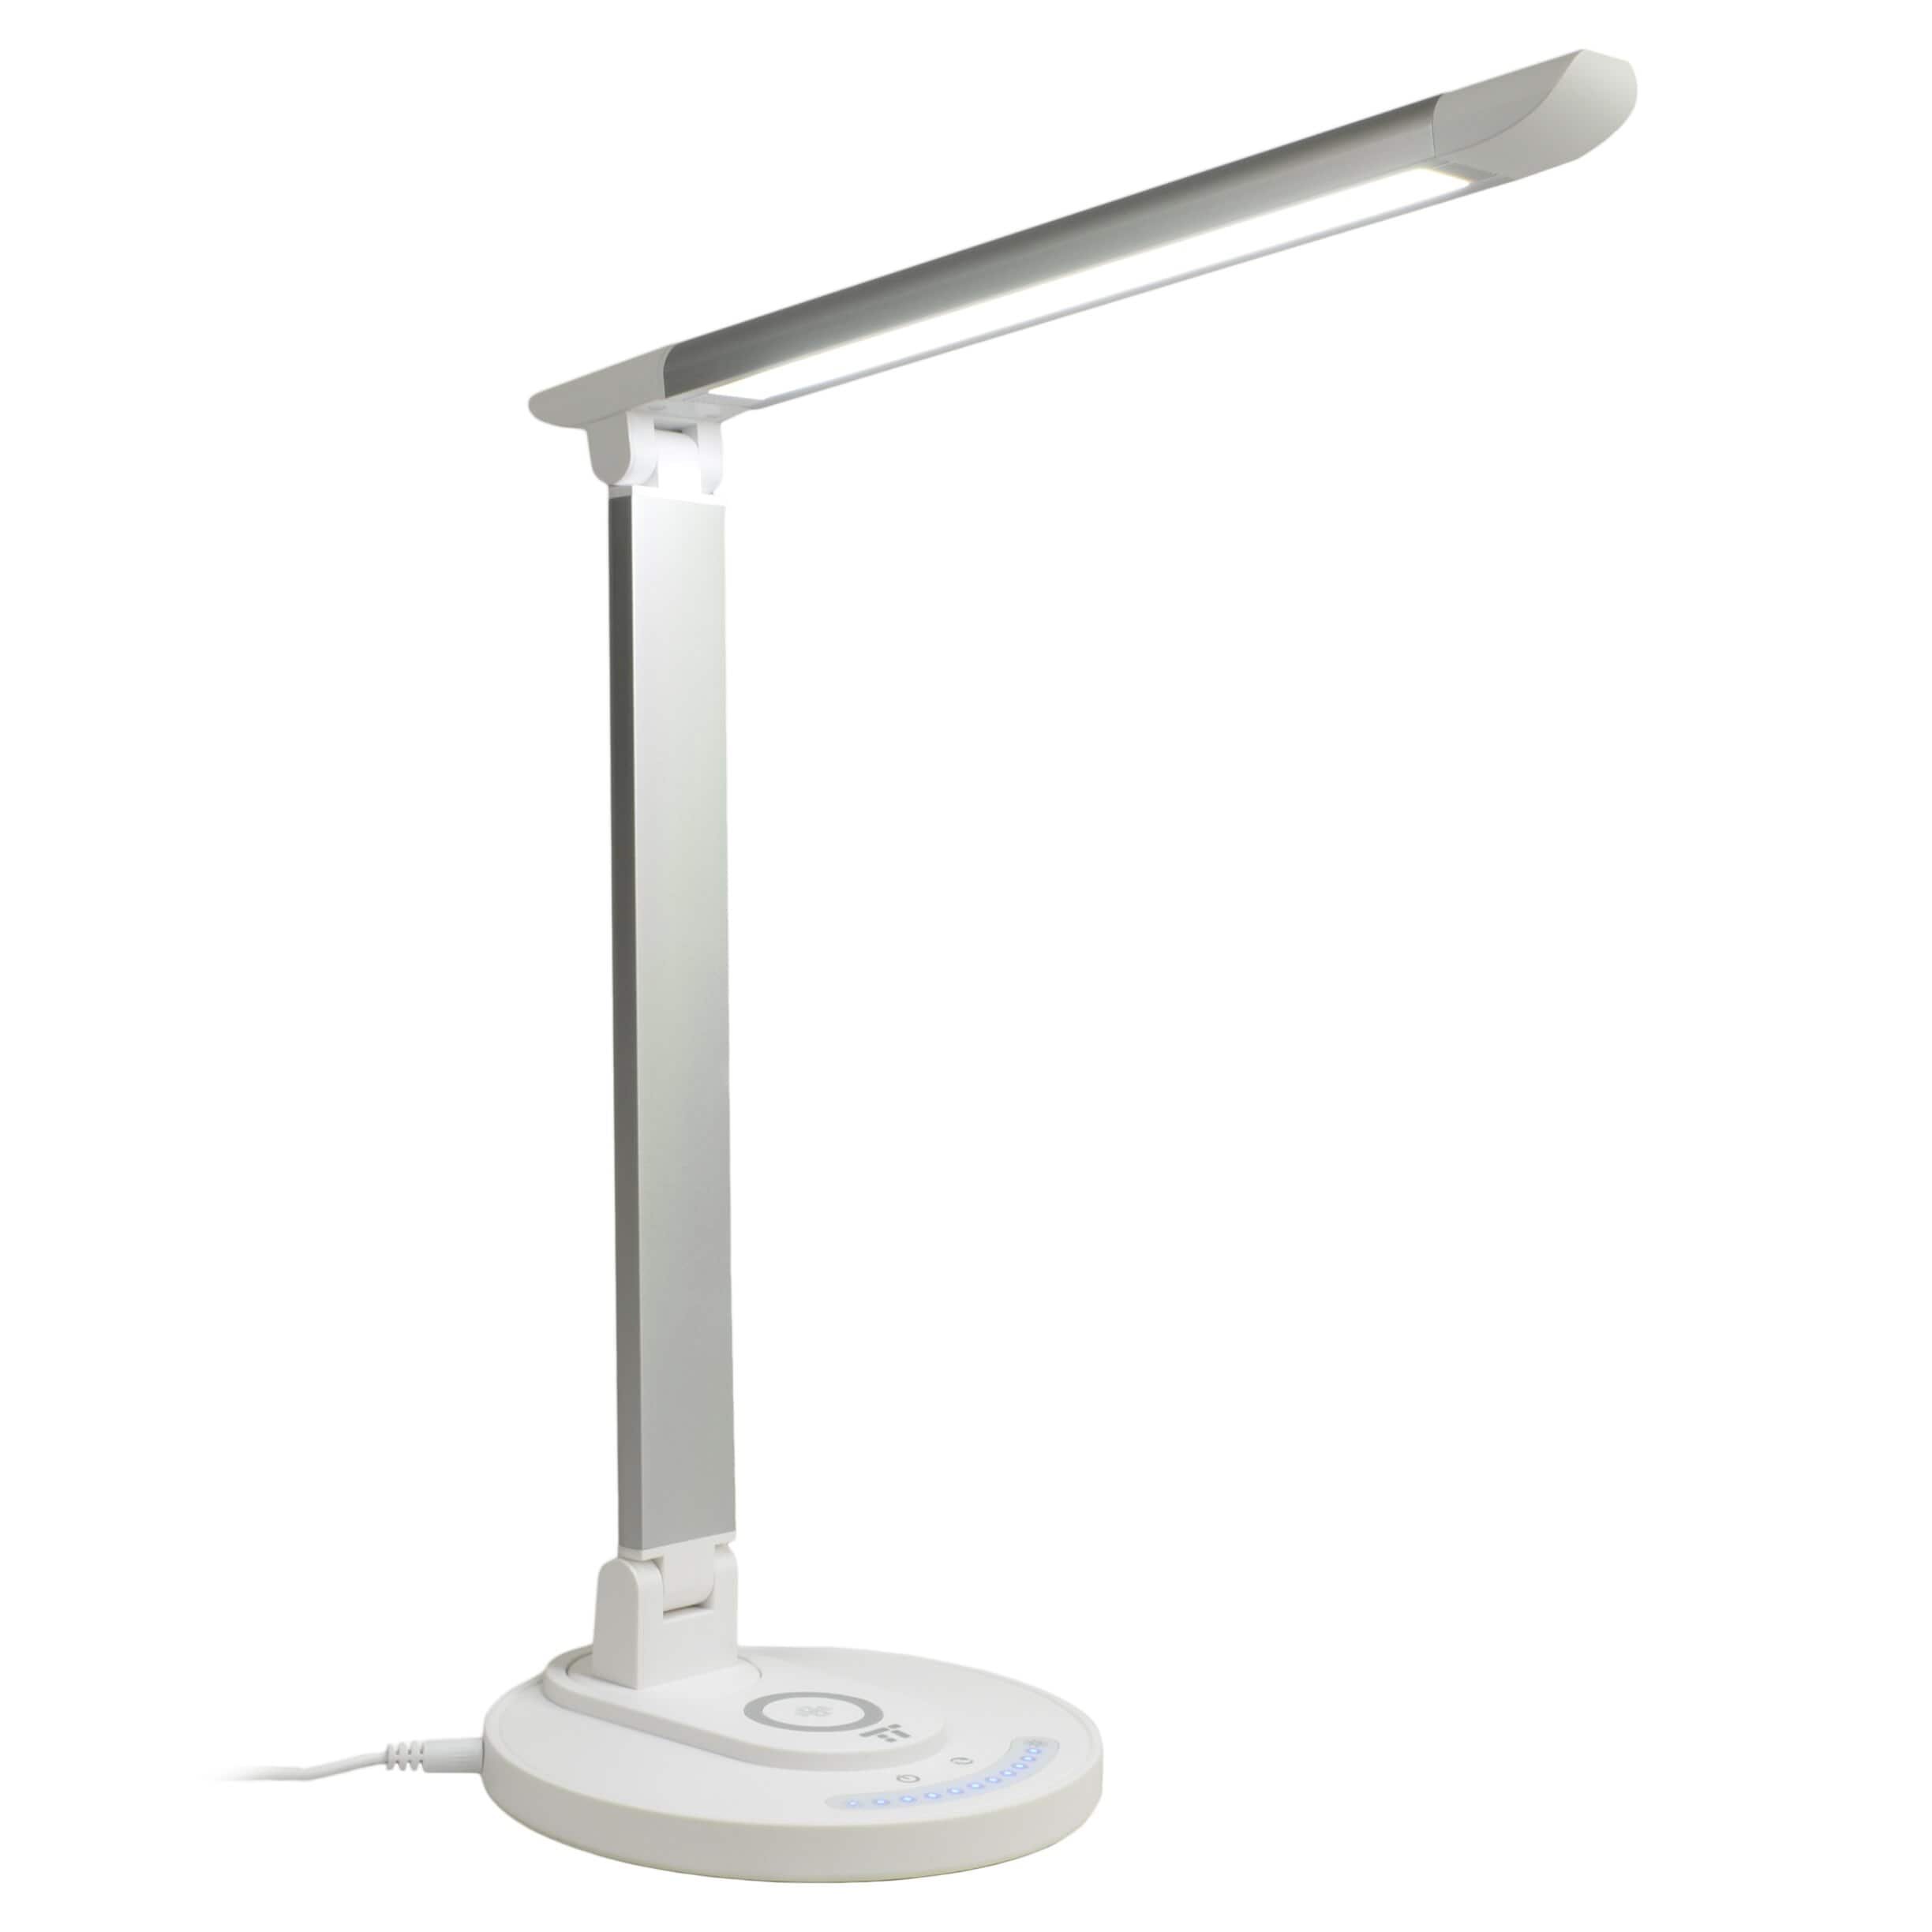 Taotronics Aluminum Led Desk Lamp W/ Qi Wireless Charging Pad - $22.34 + ($3.30) In Rakuten Points + FS